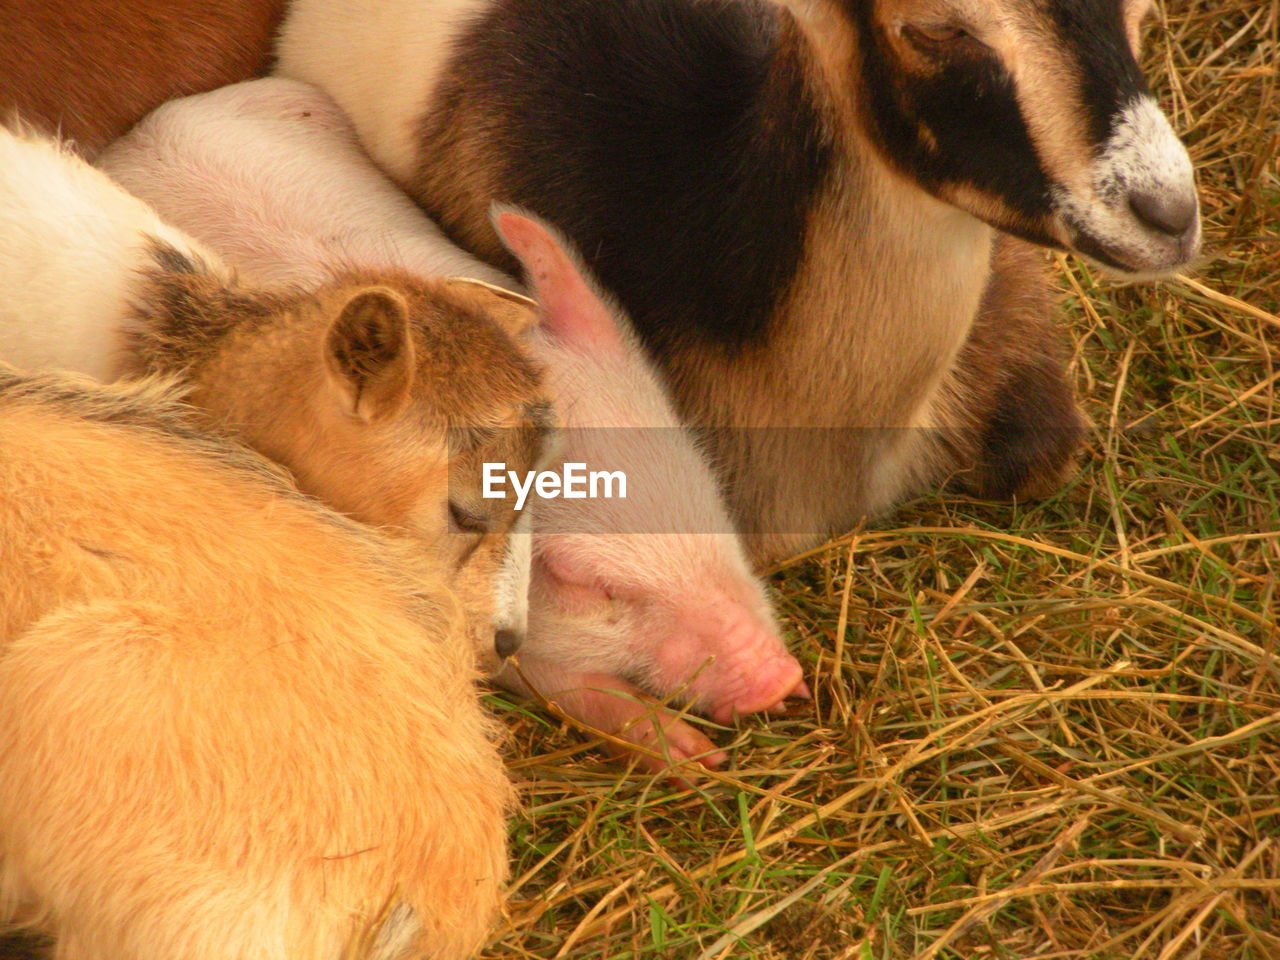 domestic, mammal, pets, animal themes, domestic animals, animal, group of animals, young animal, vertebrate, togetherness, livestock, high angle view, dog, canine, no people, relaxation, plant, grass, close-up, animal family, animal head, drinking